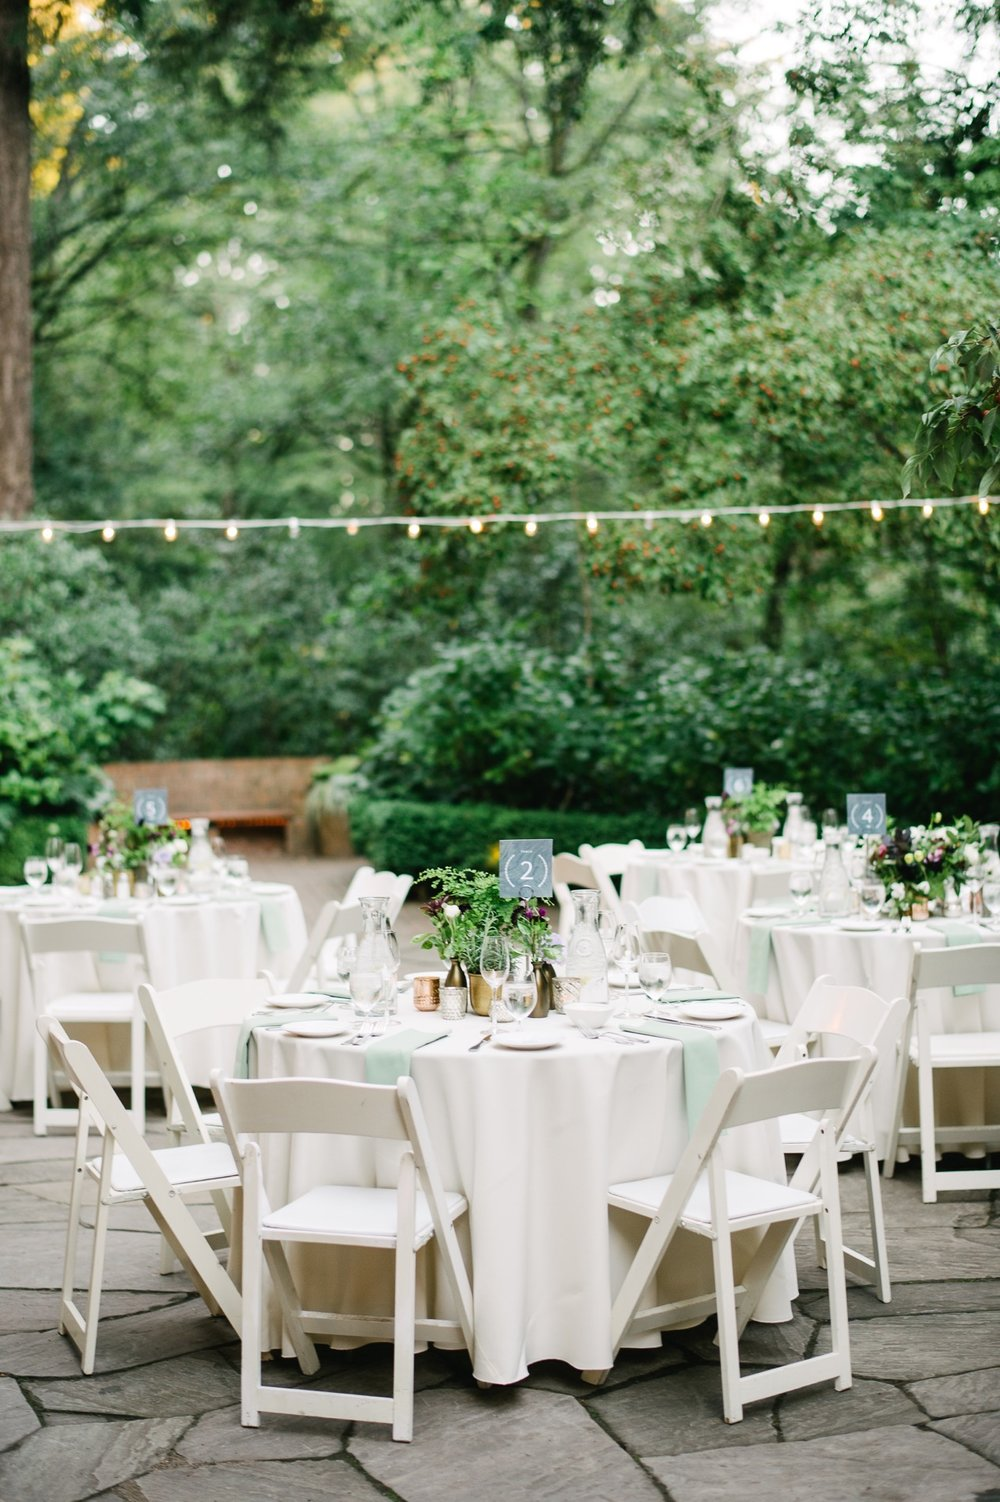 Bridalbliss.com | Portland Wedding | Oregon Event Planning and Design | Aaron Courter Photography